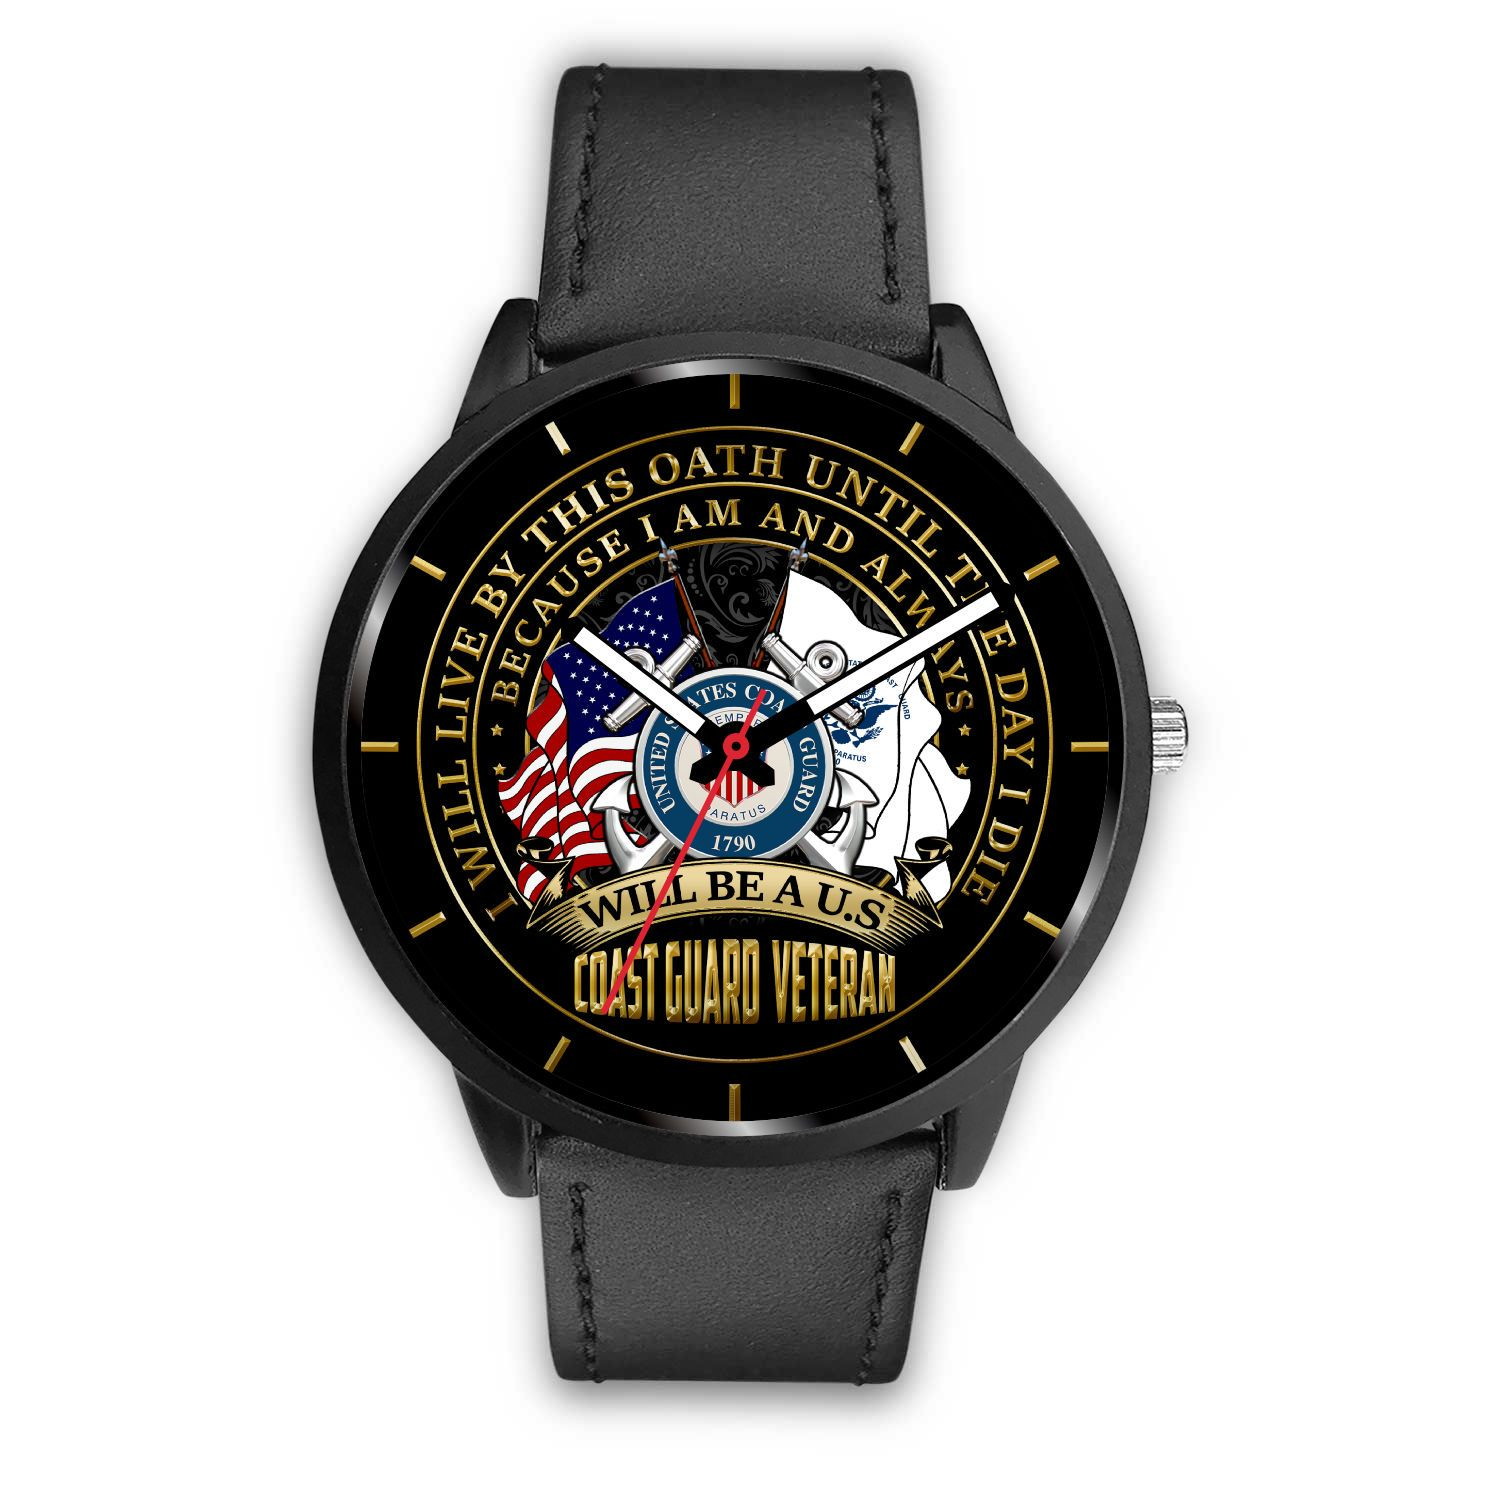 i-will-live_35ebe3be-c89c-9879-6186-4a7c43bd69f0 I WILL LIVE BY THIS OATH UNTIL THE DAY I DIE BECAUSE I AM AND ALWAYS WILL BE A U.S COAST GUARD VETERAN WATCH  %tag